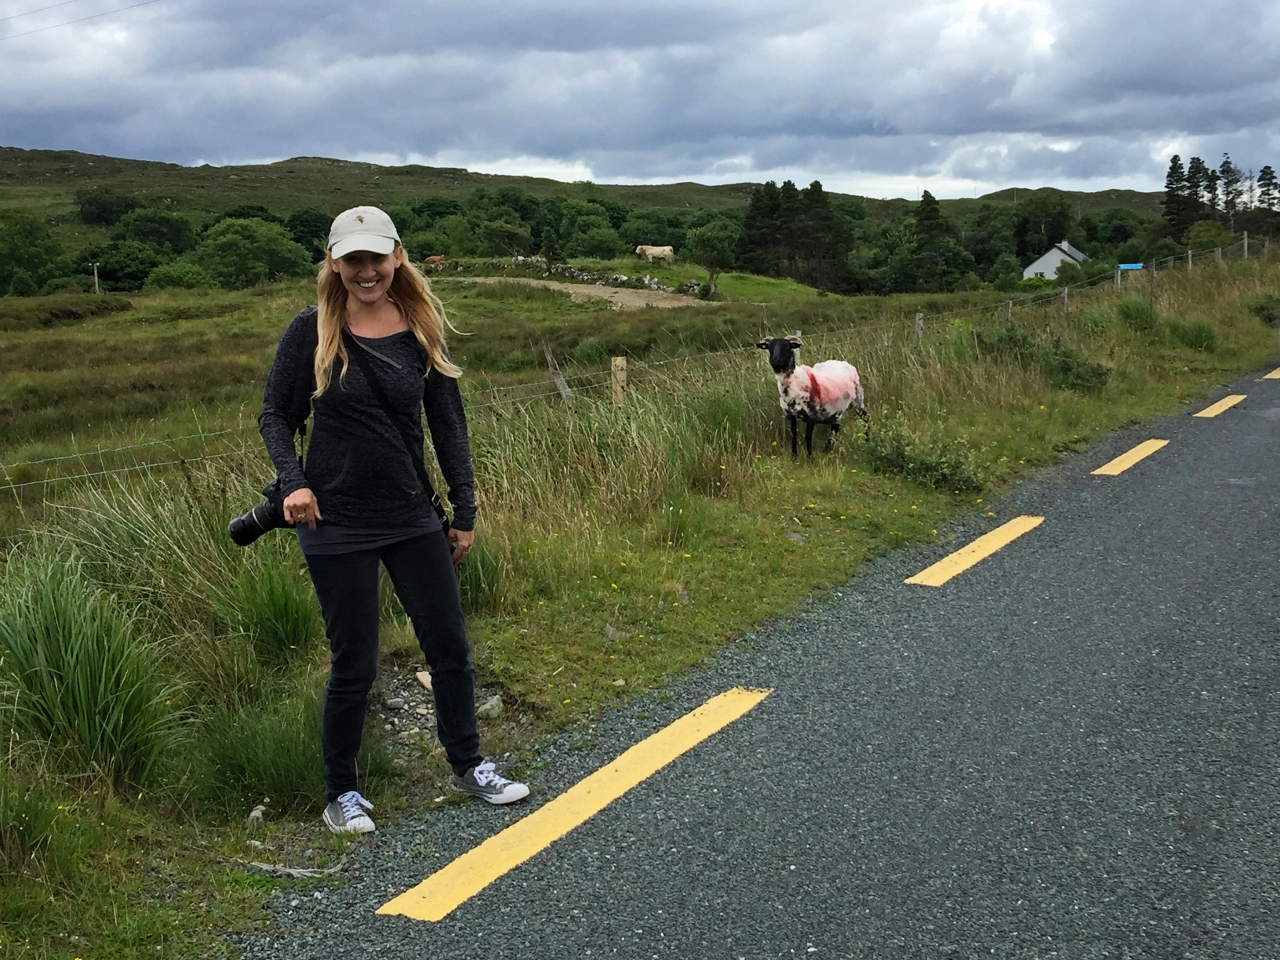 Taking photos of sheep in Ireland